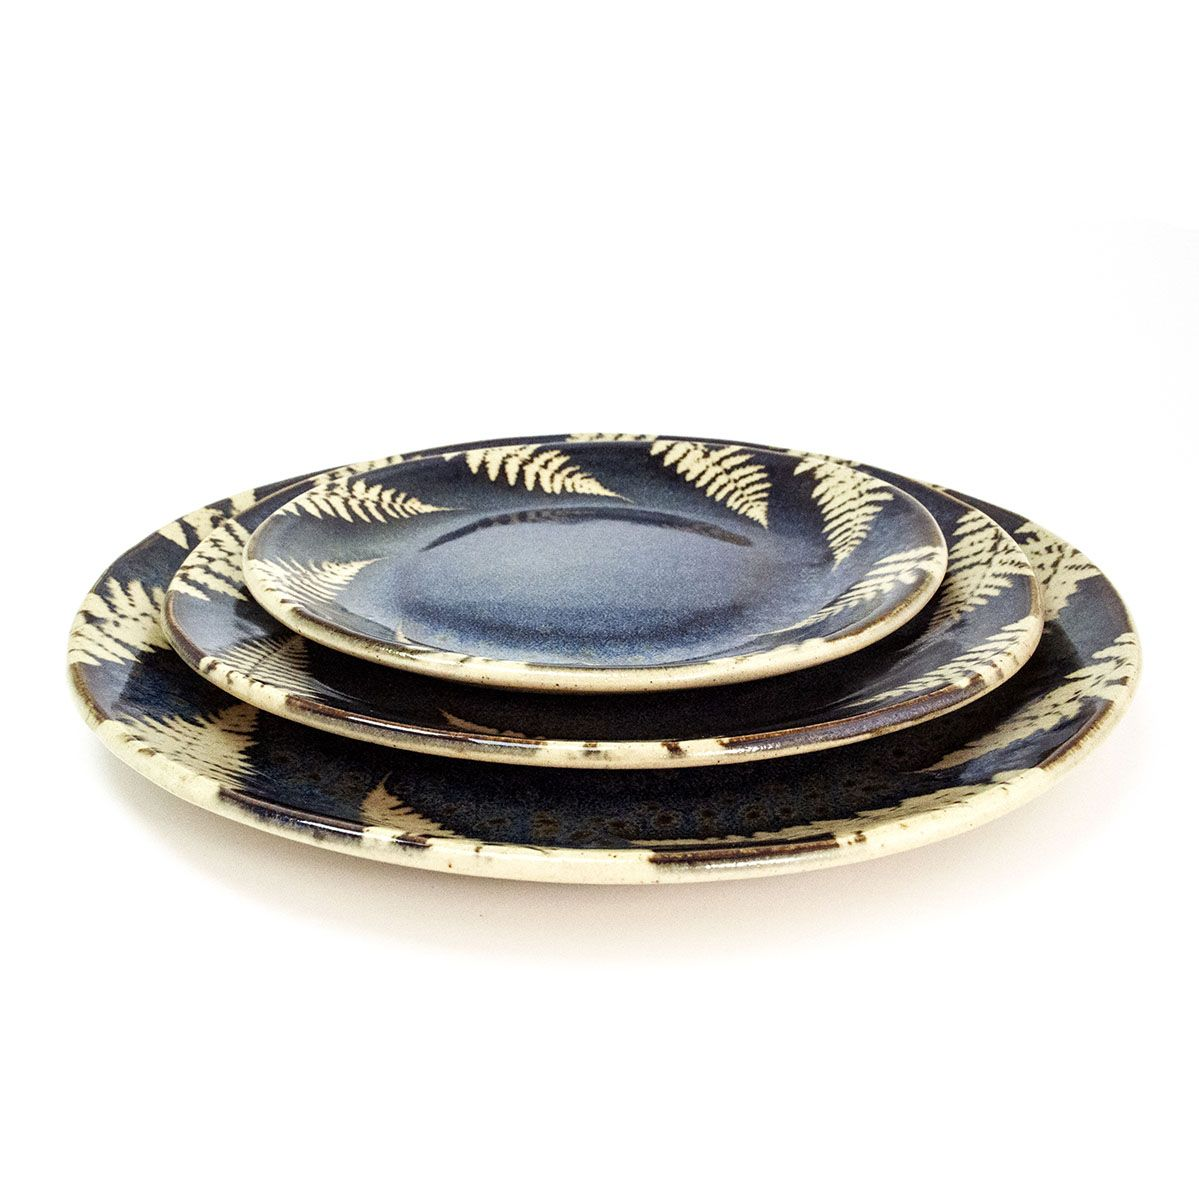 One-of-a-kind plates using an impressed fern pattern.